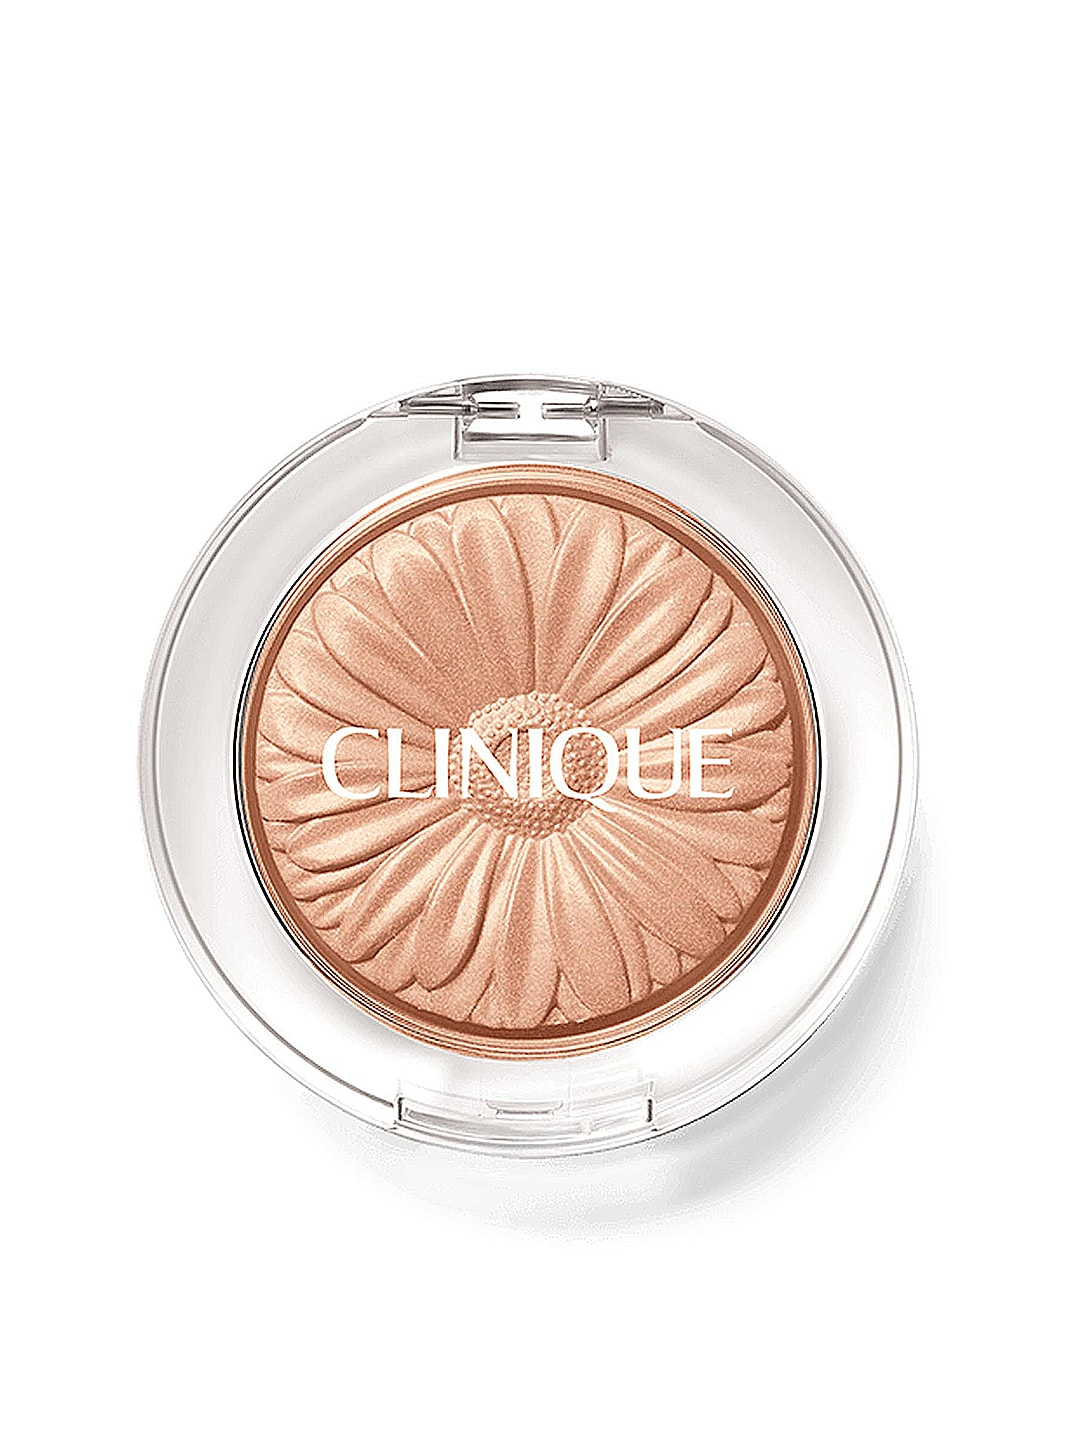 Clinique Cream Pop Lid Pop image